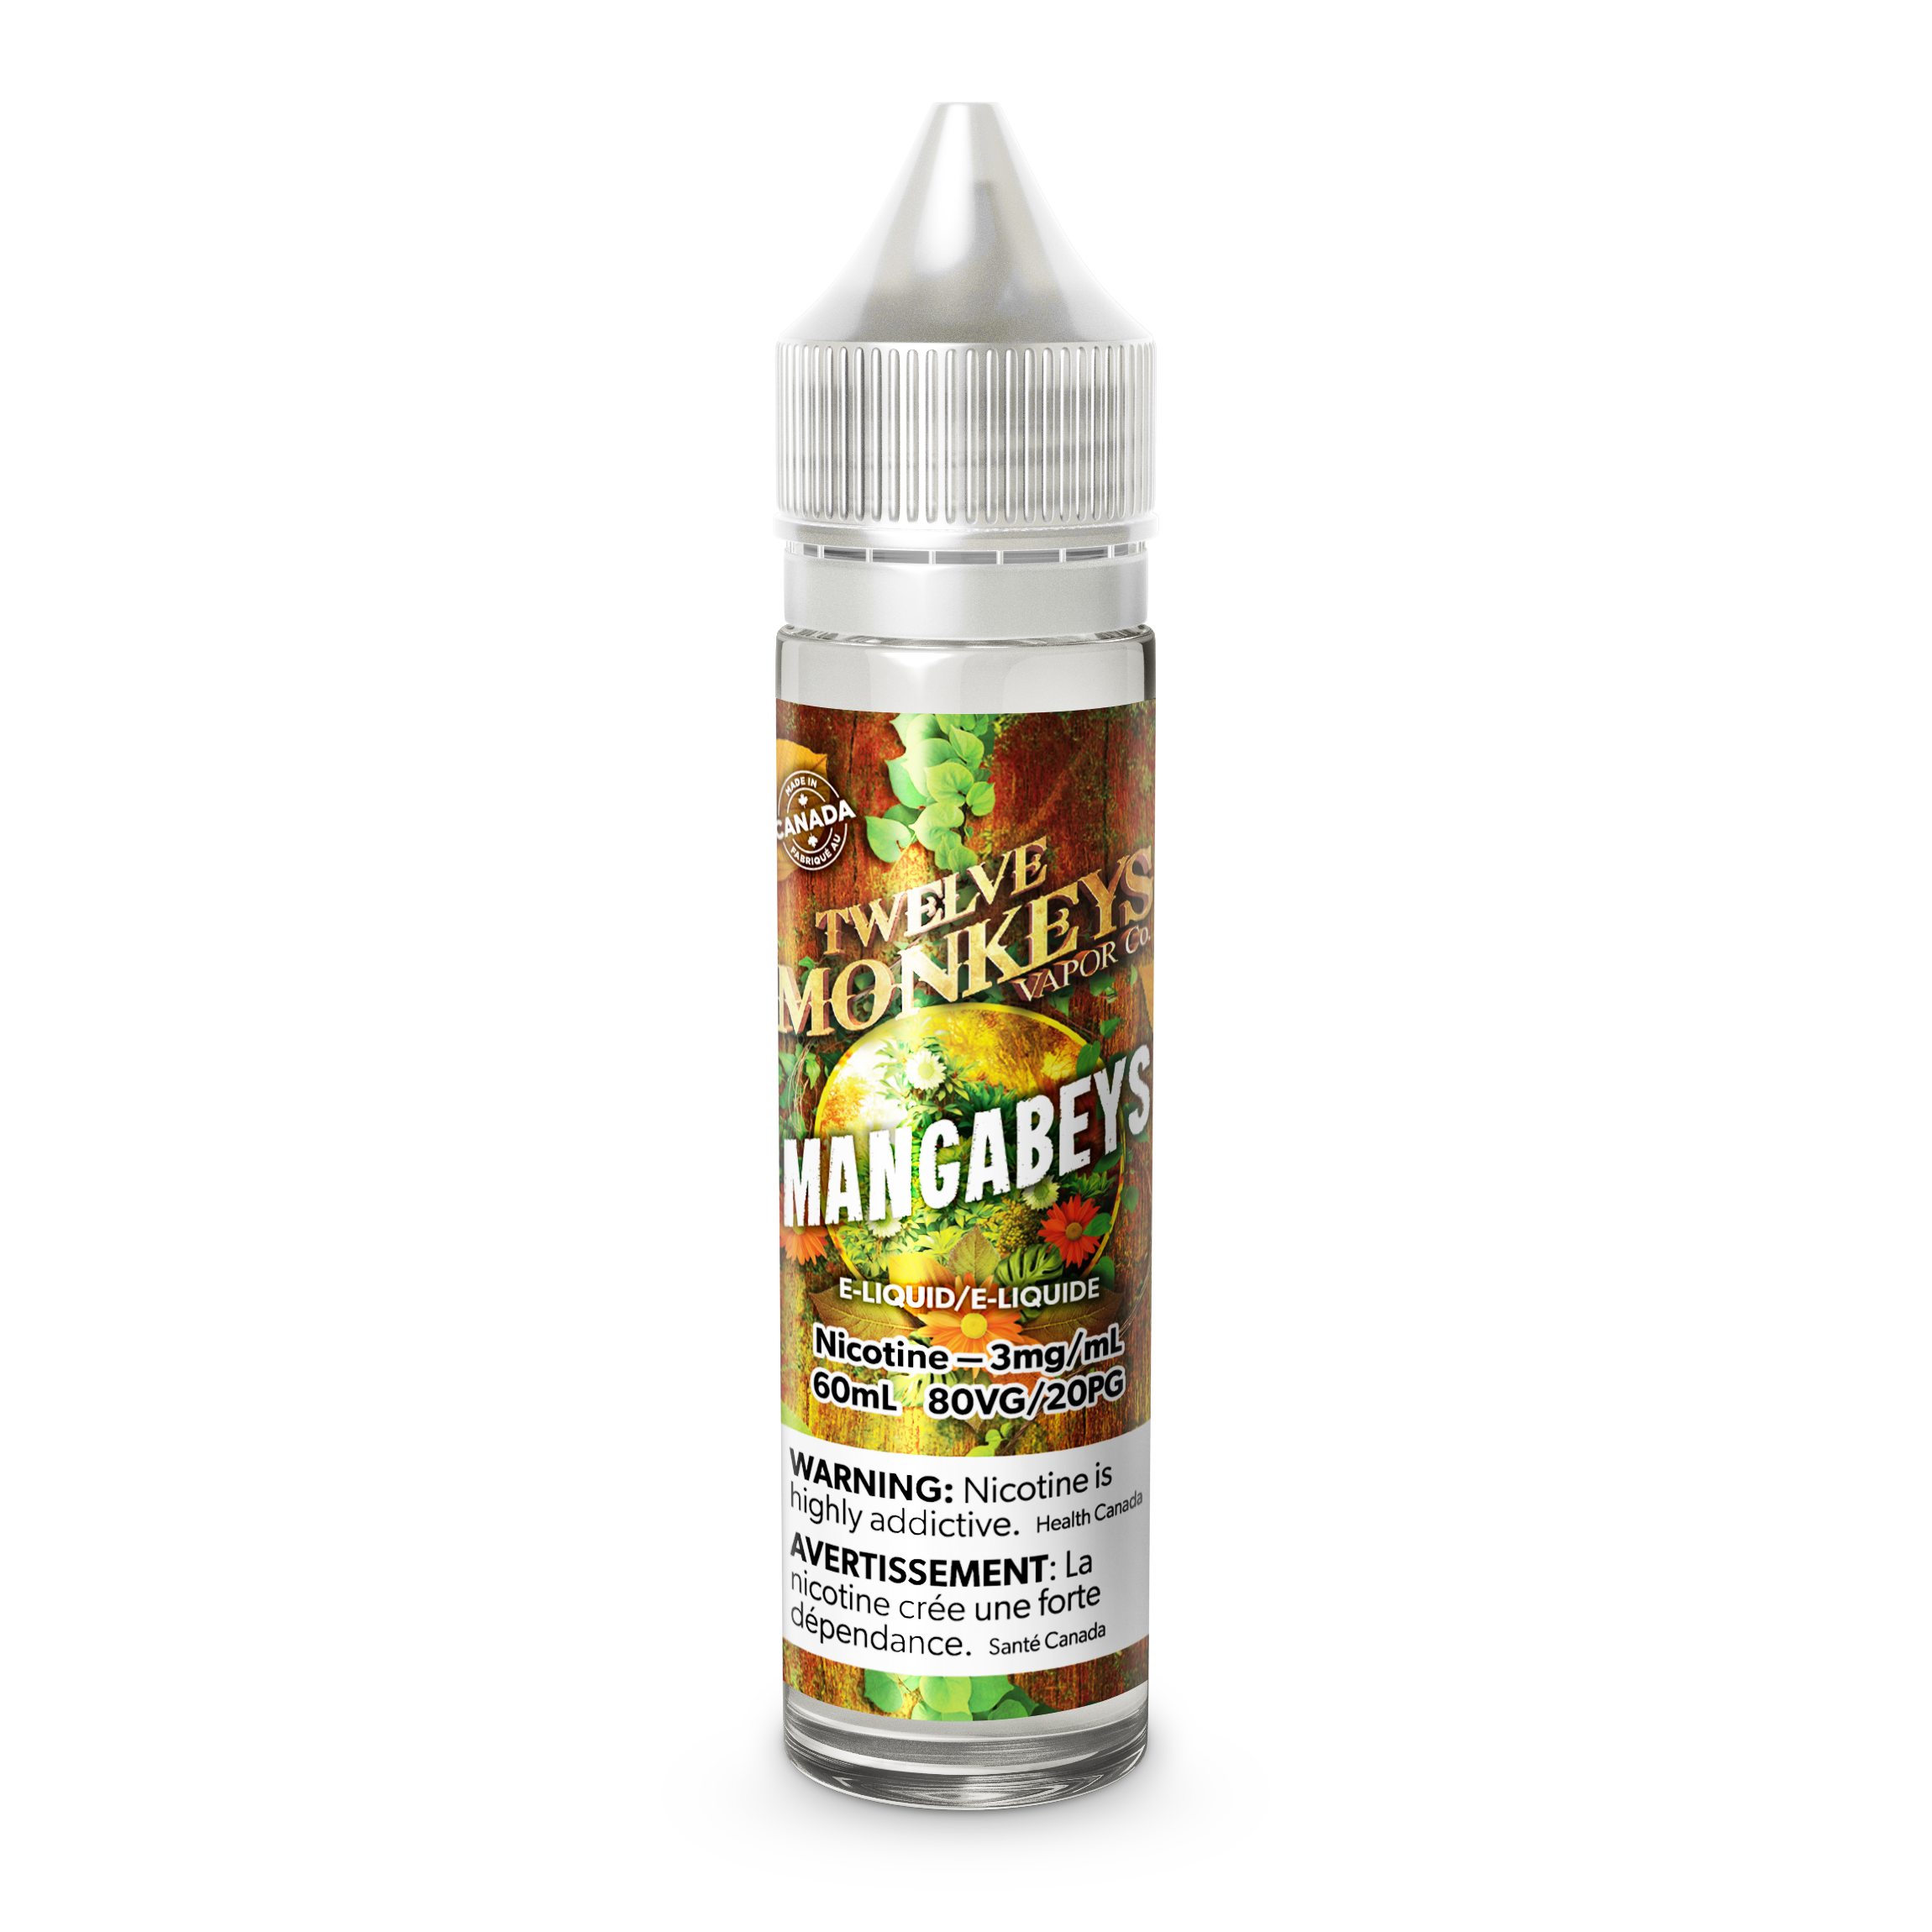 Twelve Monkeys: Mangabeys (60mL)